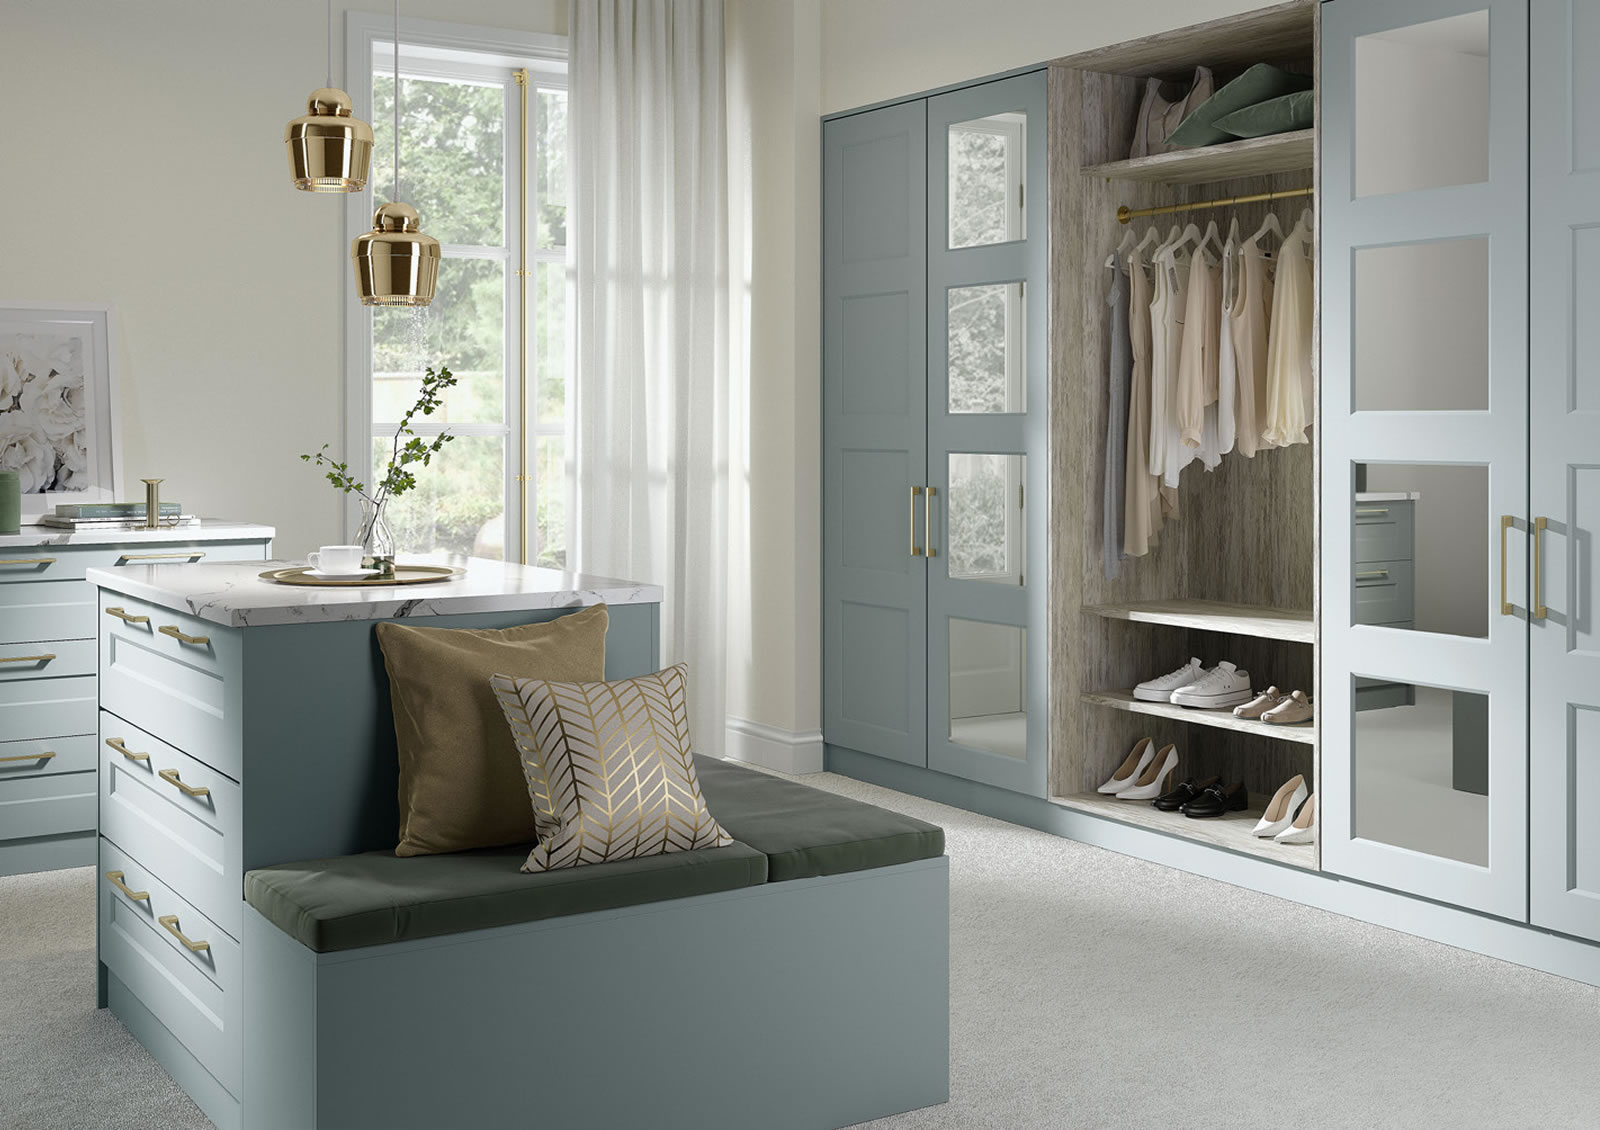 Mya fitted Bedrooms Four Panel Eclipse shown in Fjord Matt Main photograph